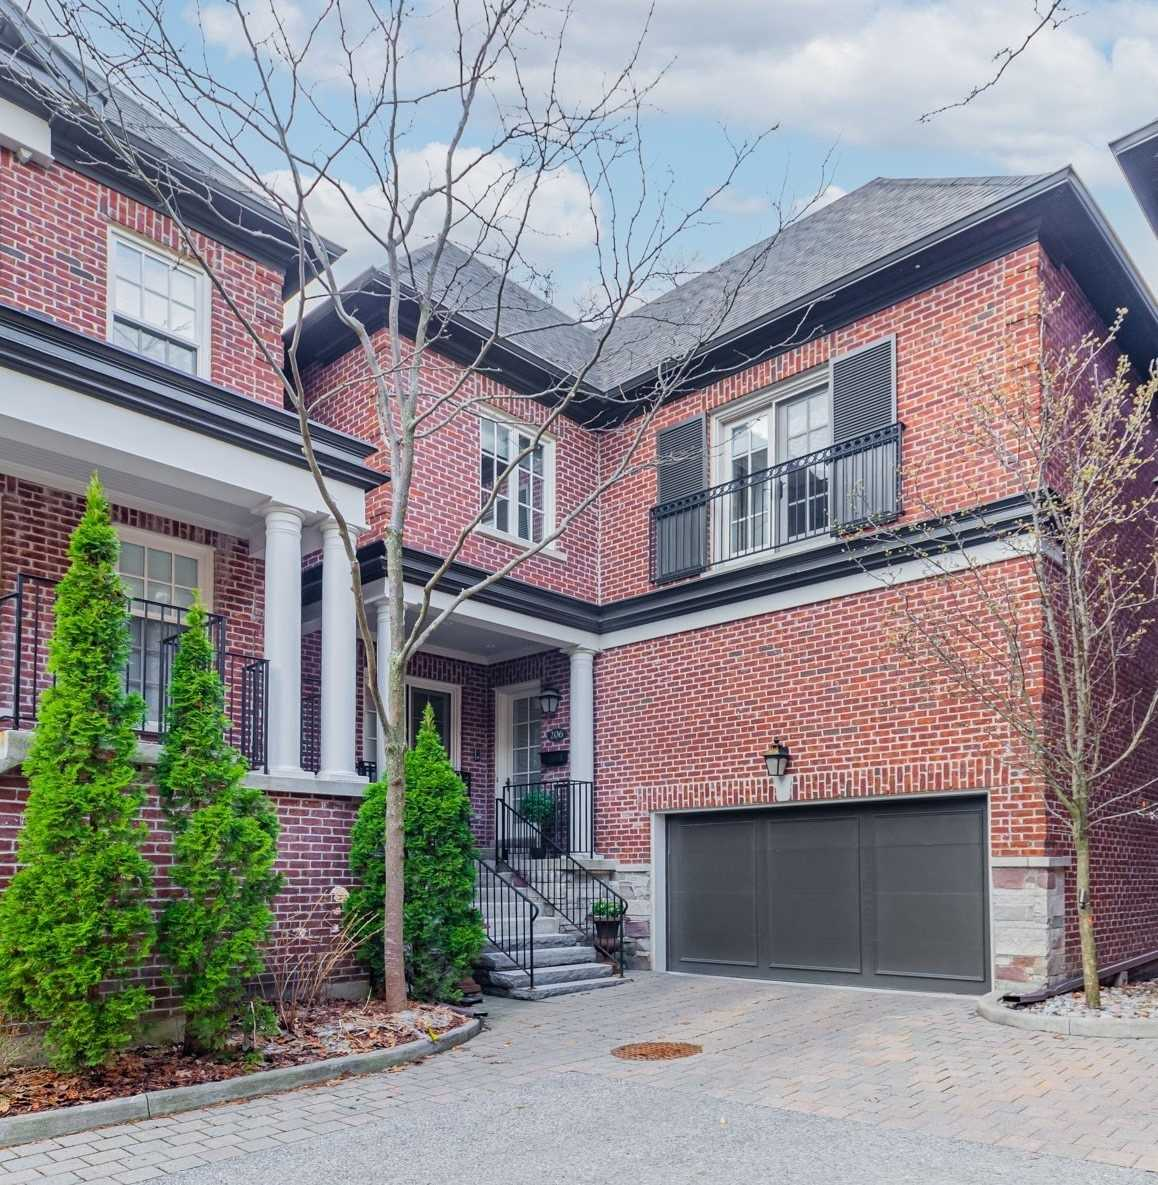 206 Moore Ave, Toronto, Ontario M4T 1V8, 3 Bedrooms Bedrooms, 8 Rooms Rooms,5 BathroomsBathrooms,Detached,For Sale,Moore,C5362307